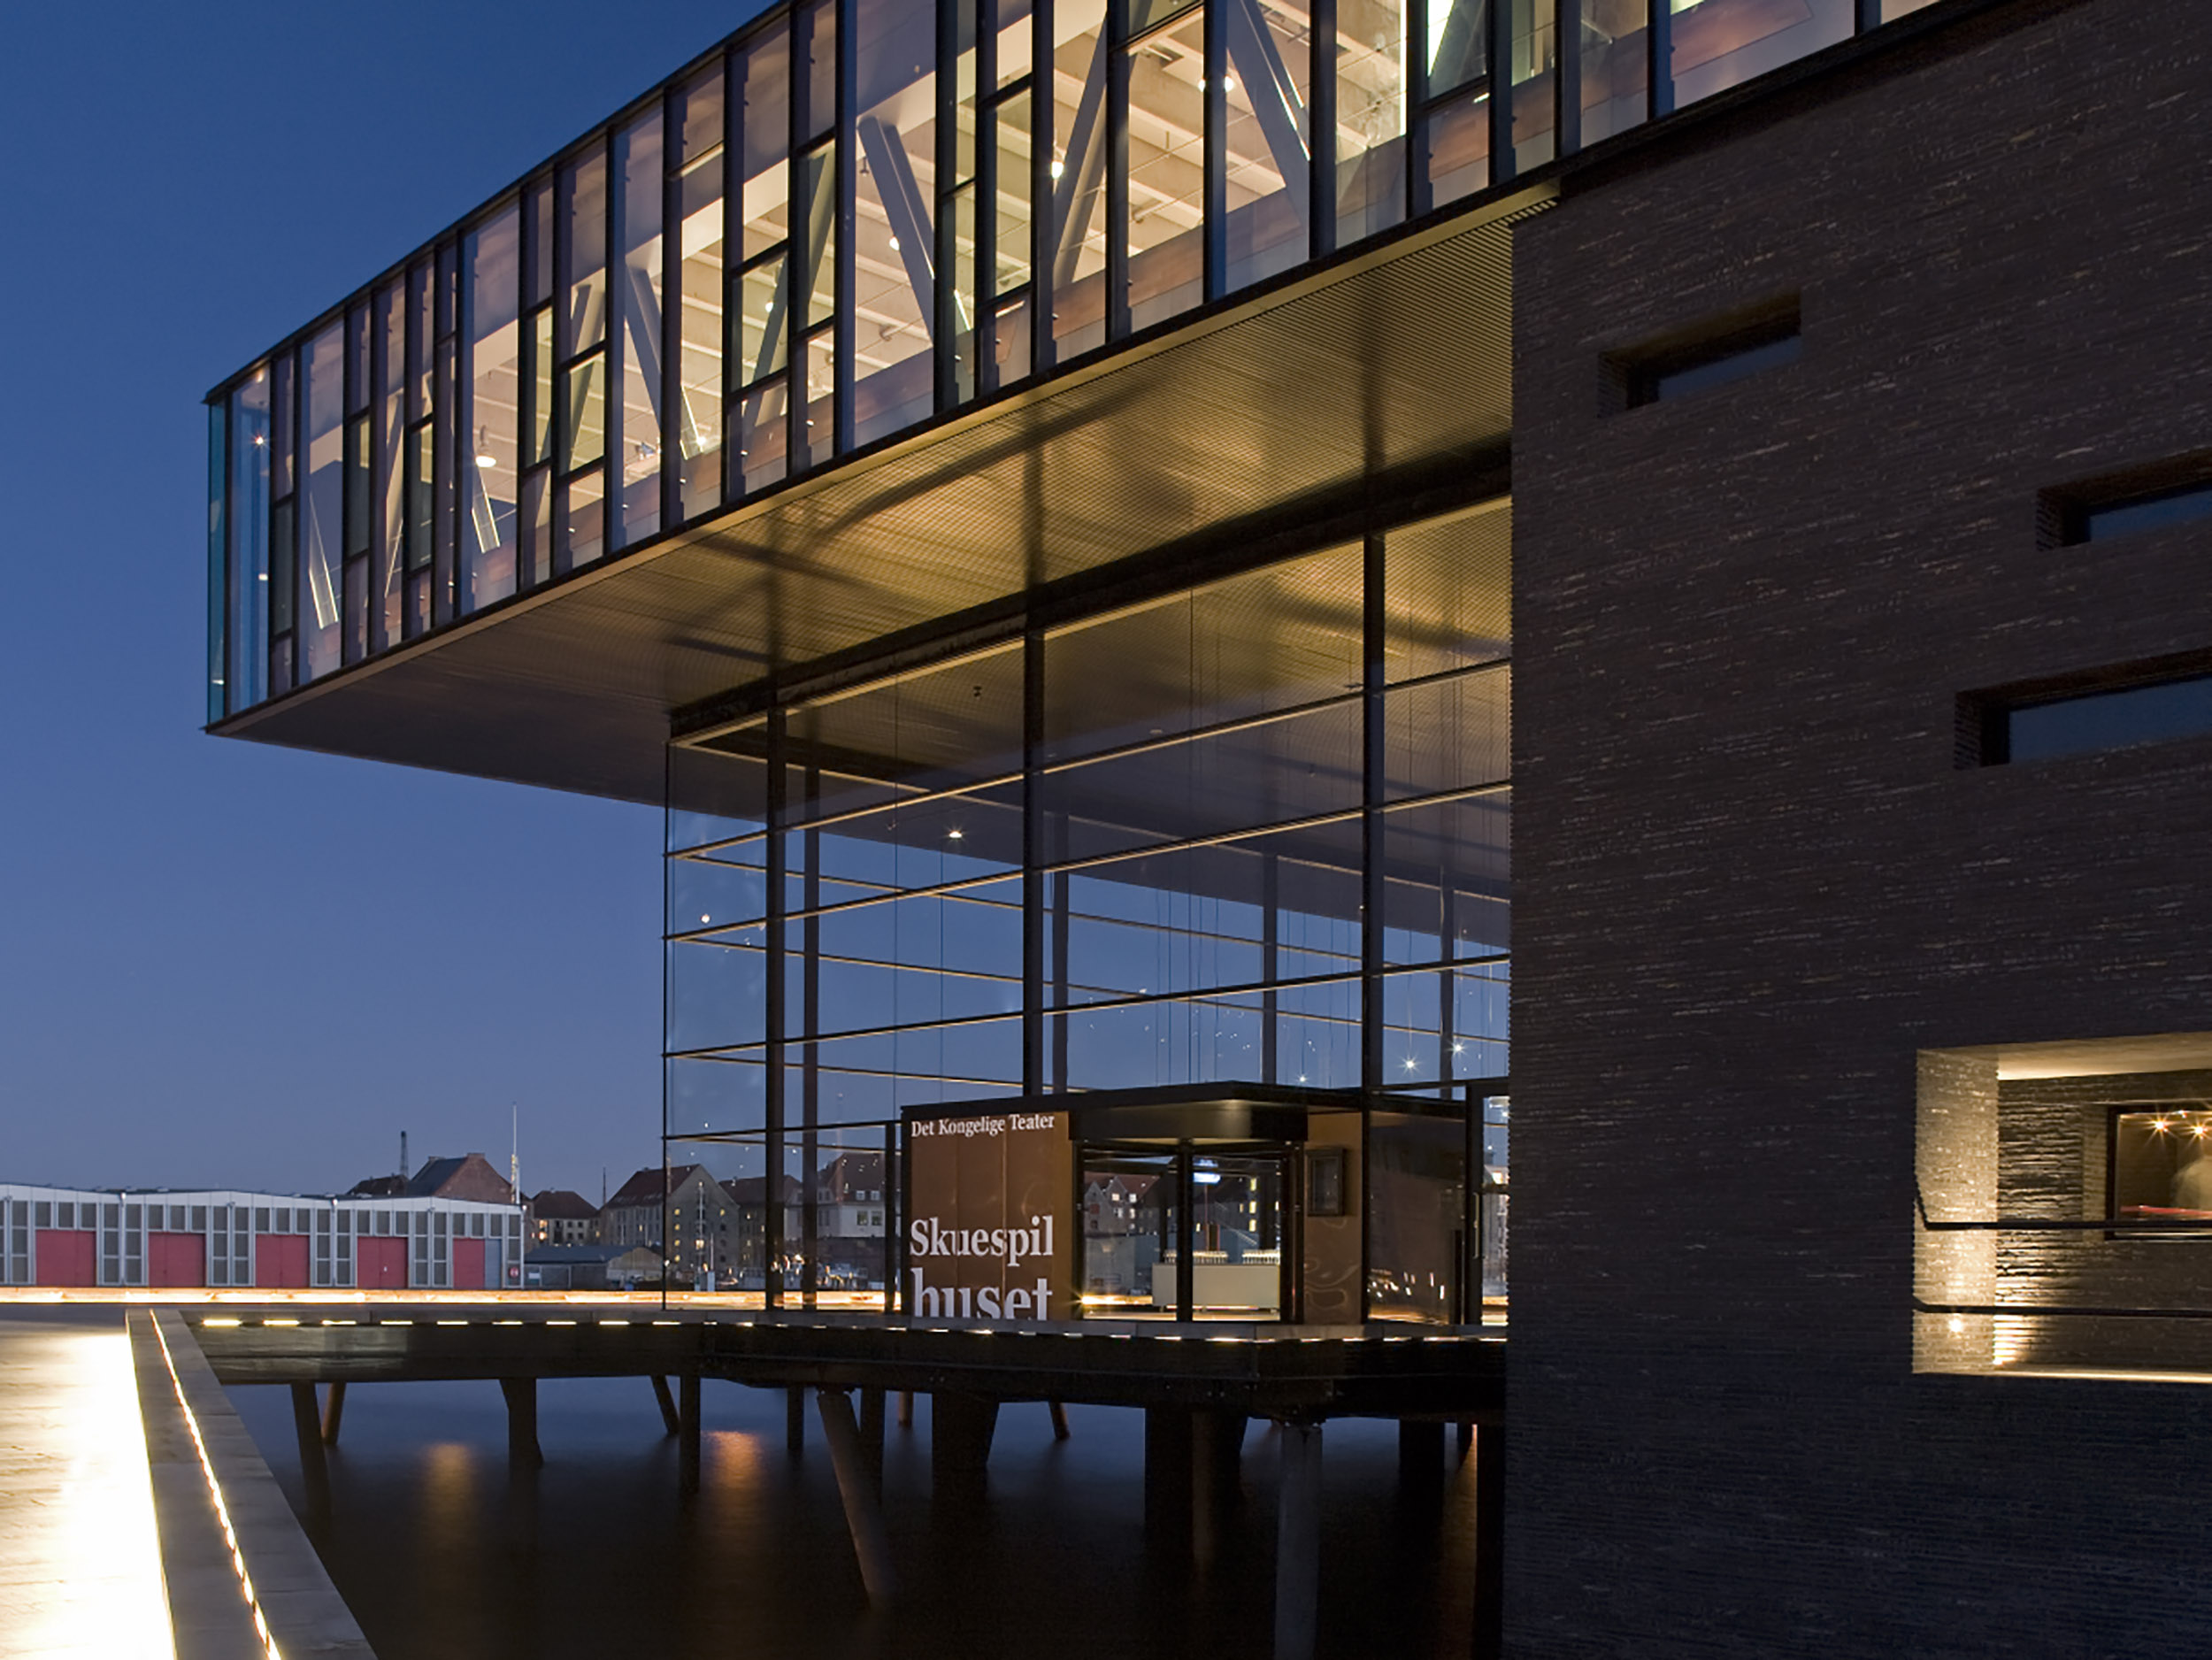 The Royal Danish Playhouse -